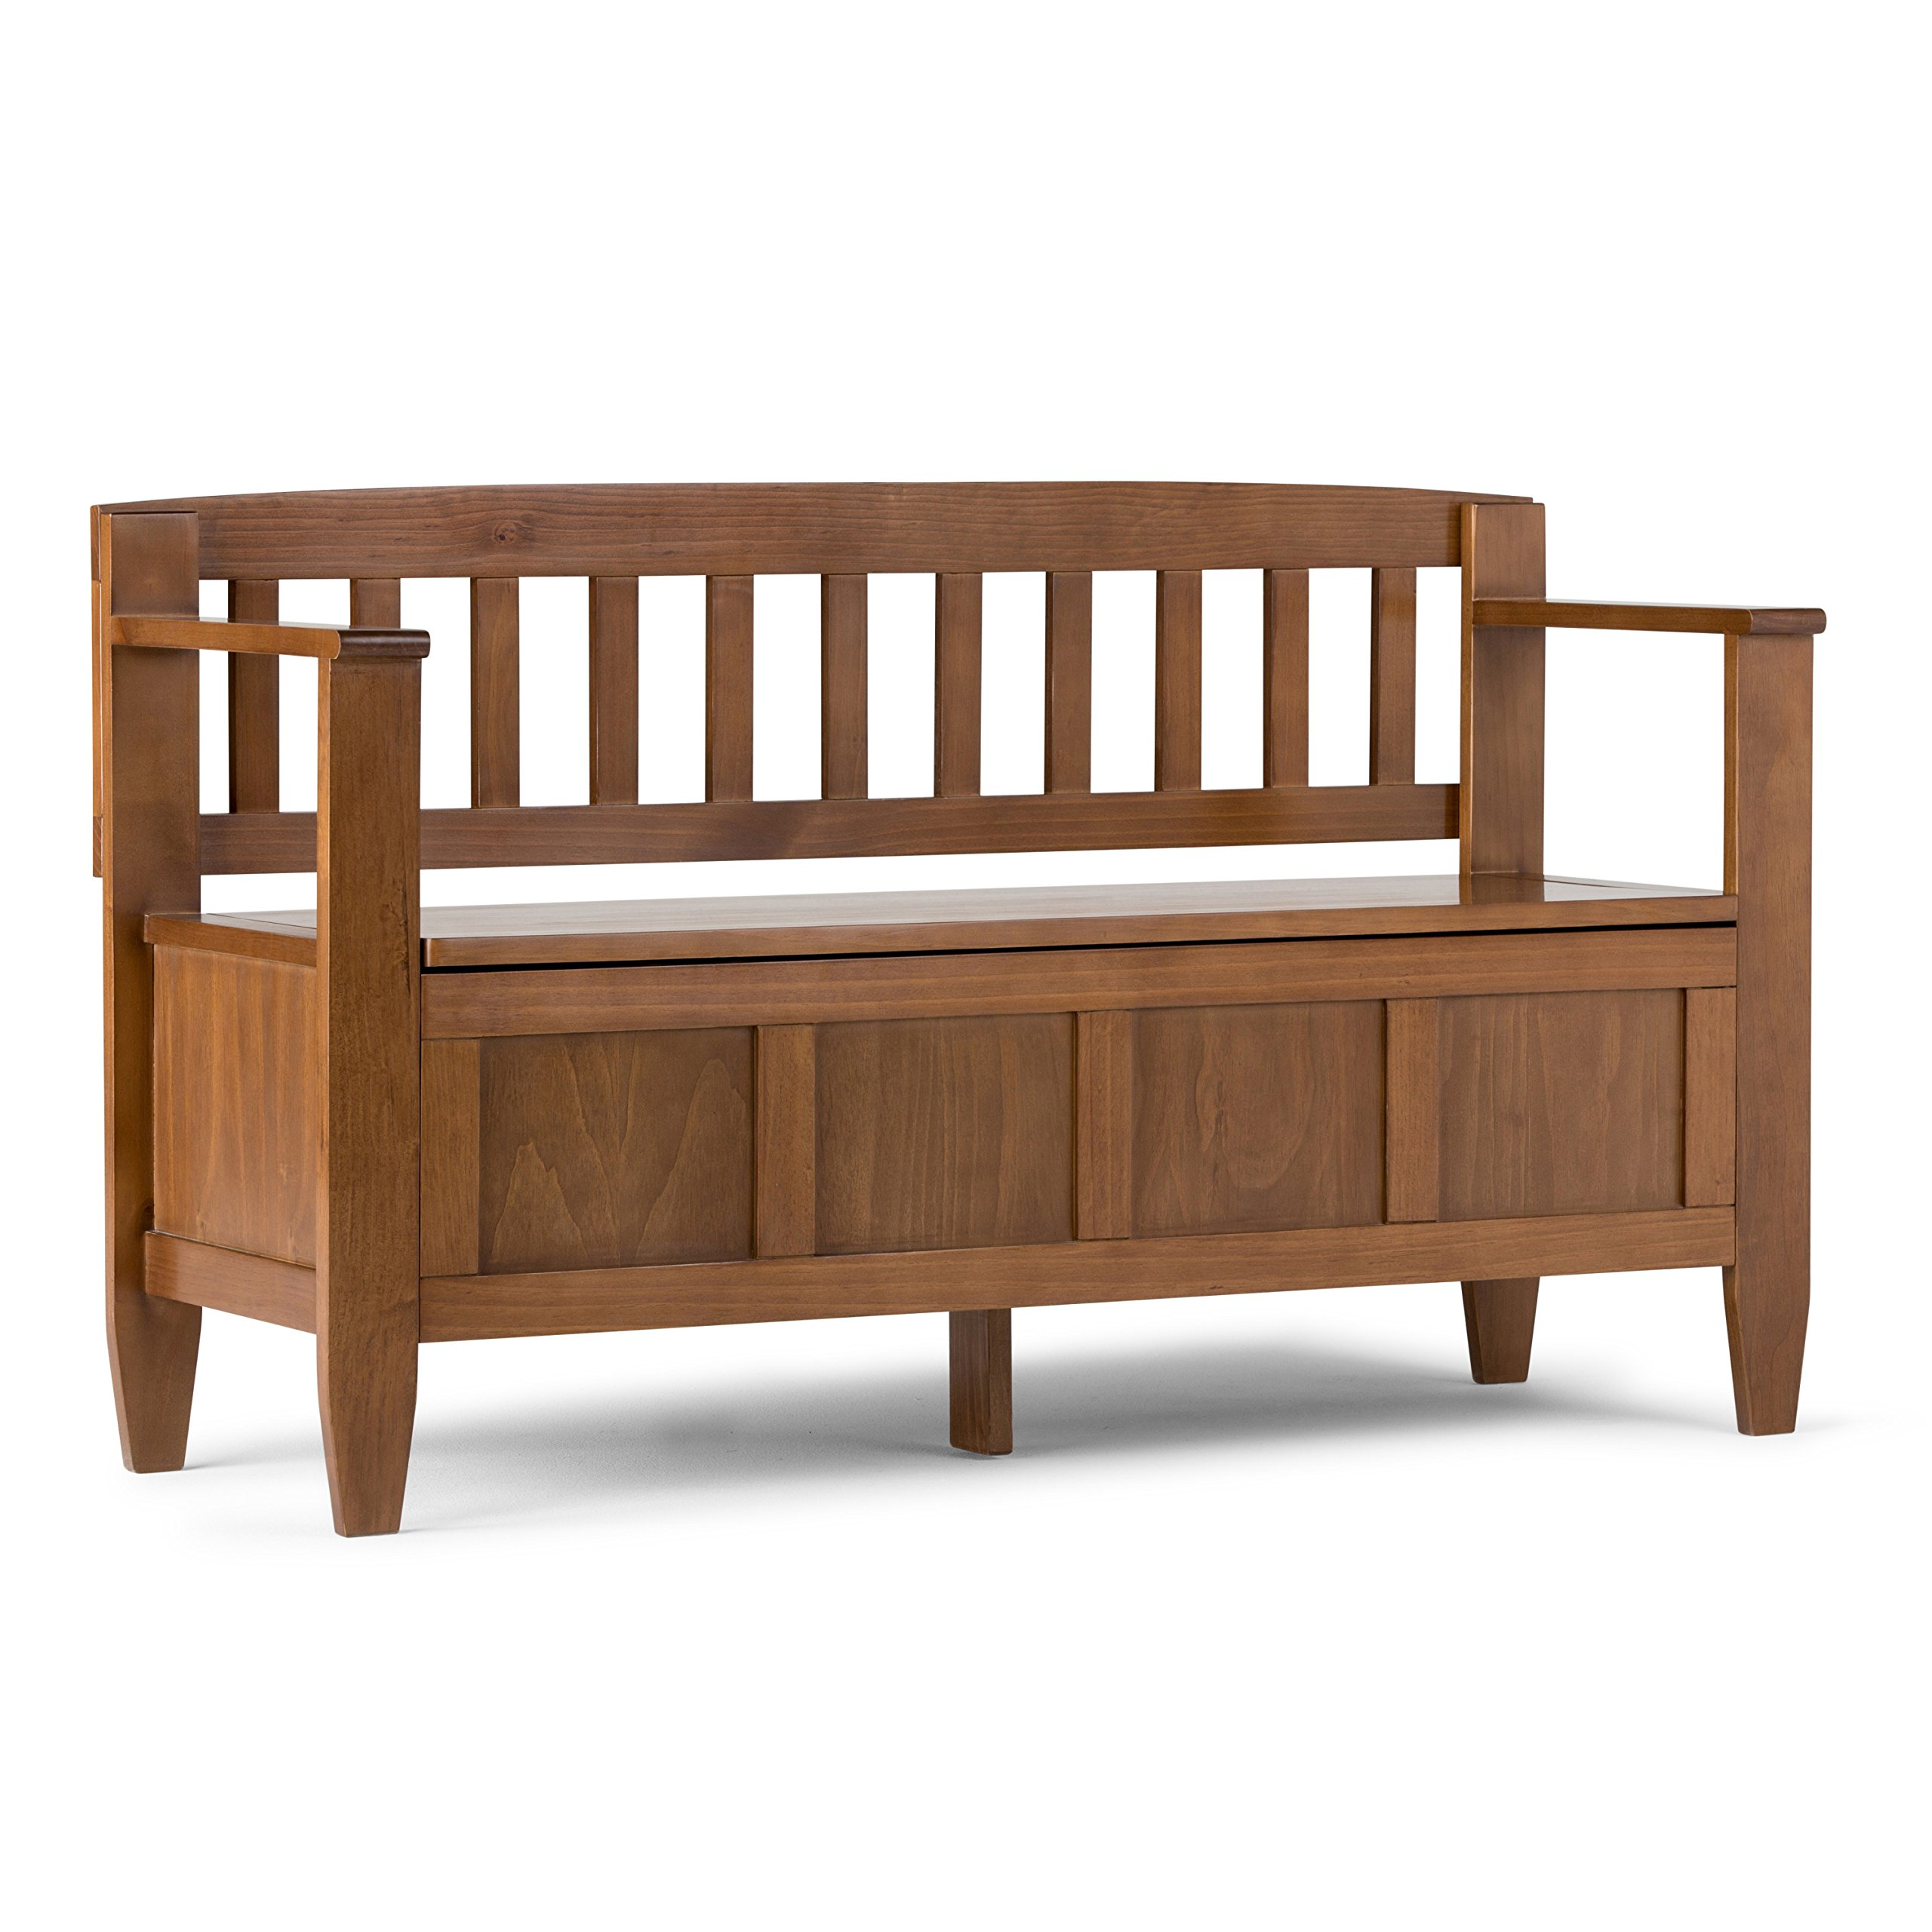 Simpli Home Brooklyn Solid Wood Entryway Storage Bench, Medium Saddle Brown